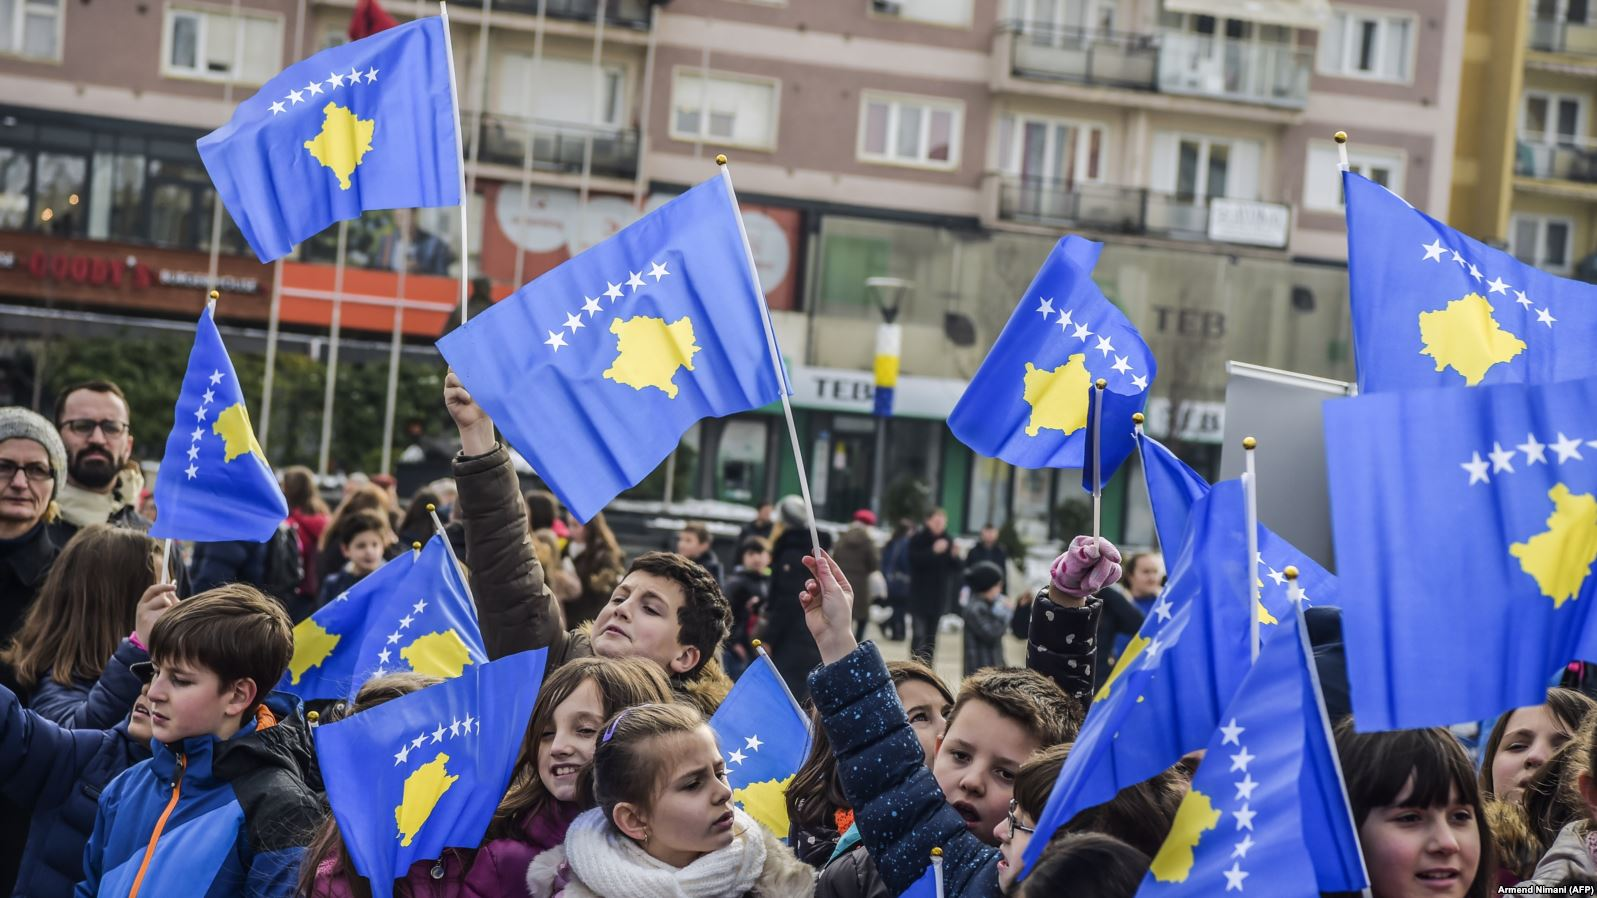 Celebrations take place in Kosovo  on the occasion of the country's 10th anniversary of independence